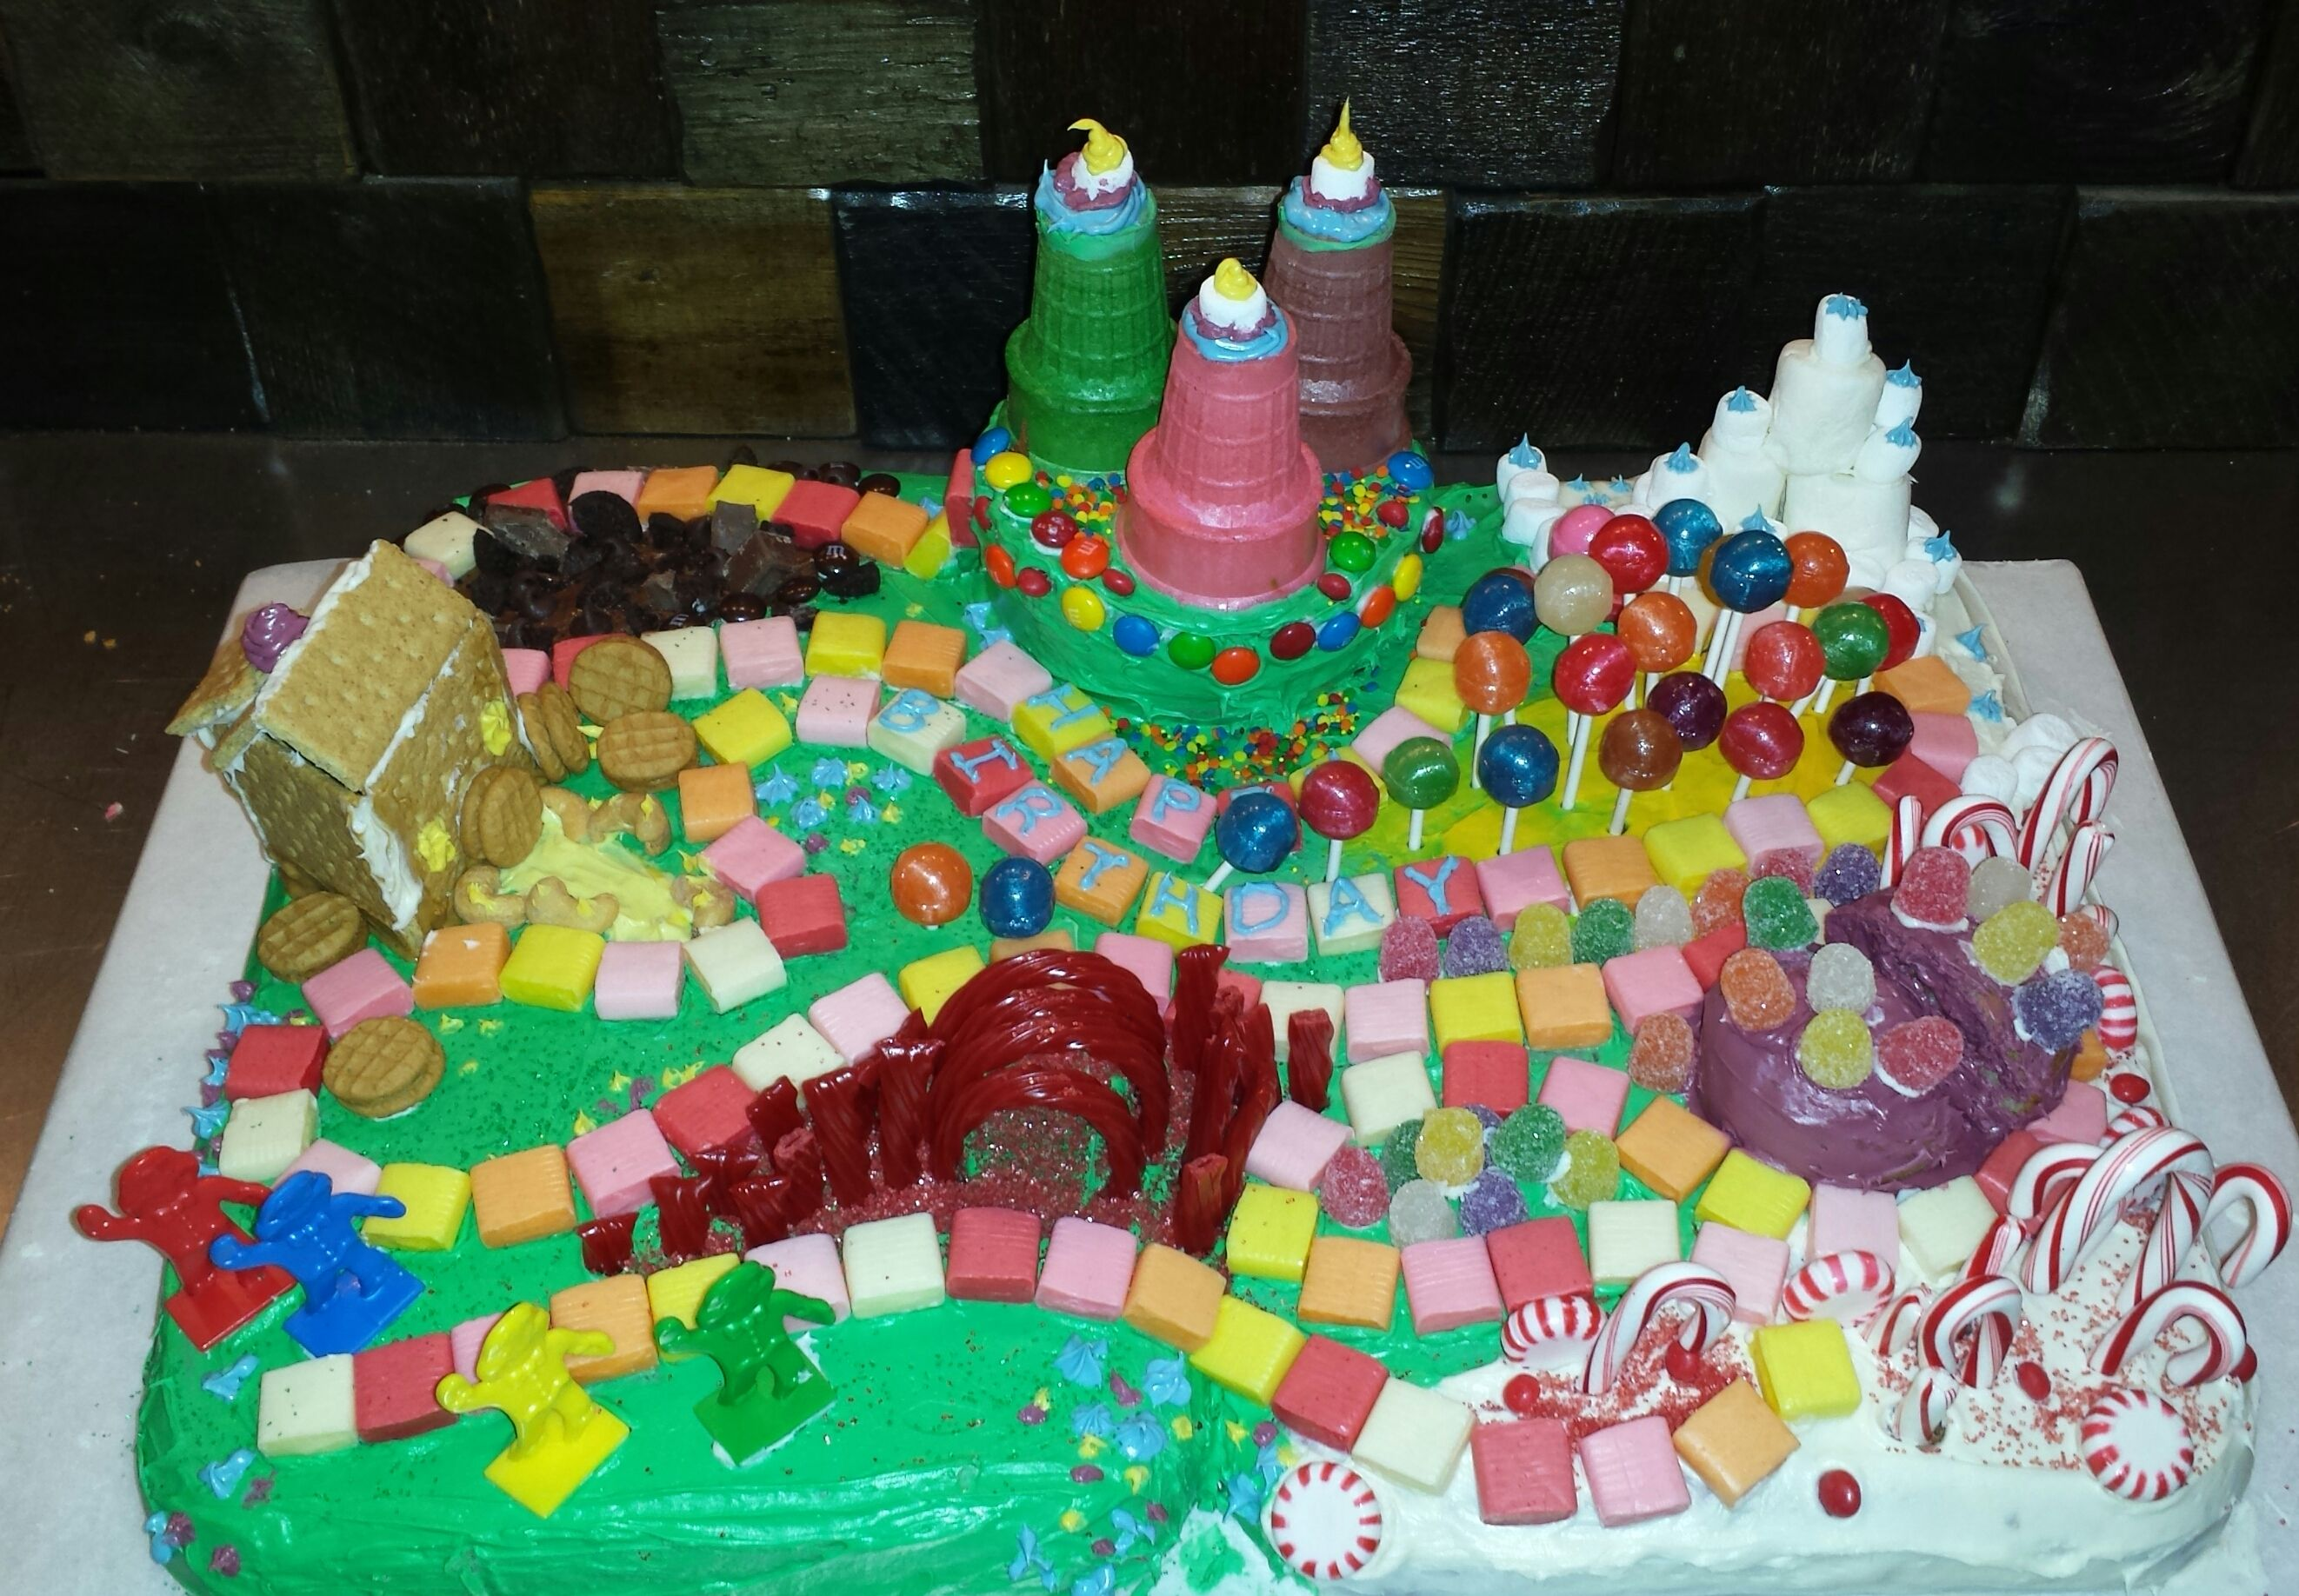 Astonishing I Was Asked To Make A Birthday Cake For The 6 Year Old Girl I Funny Birthday Cards Online Unhofree Goldxyz